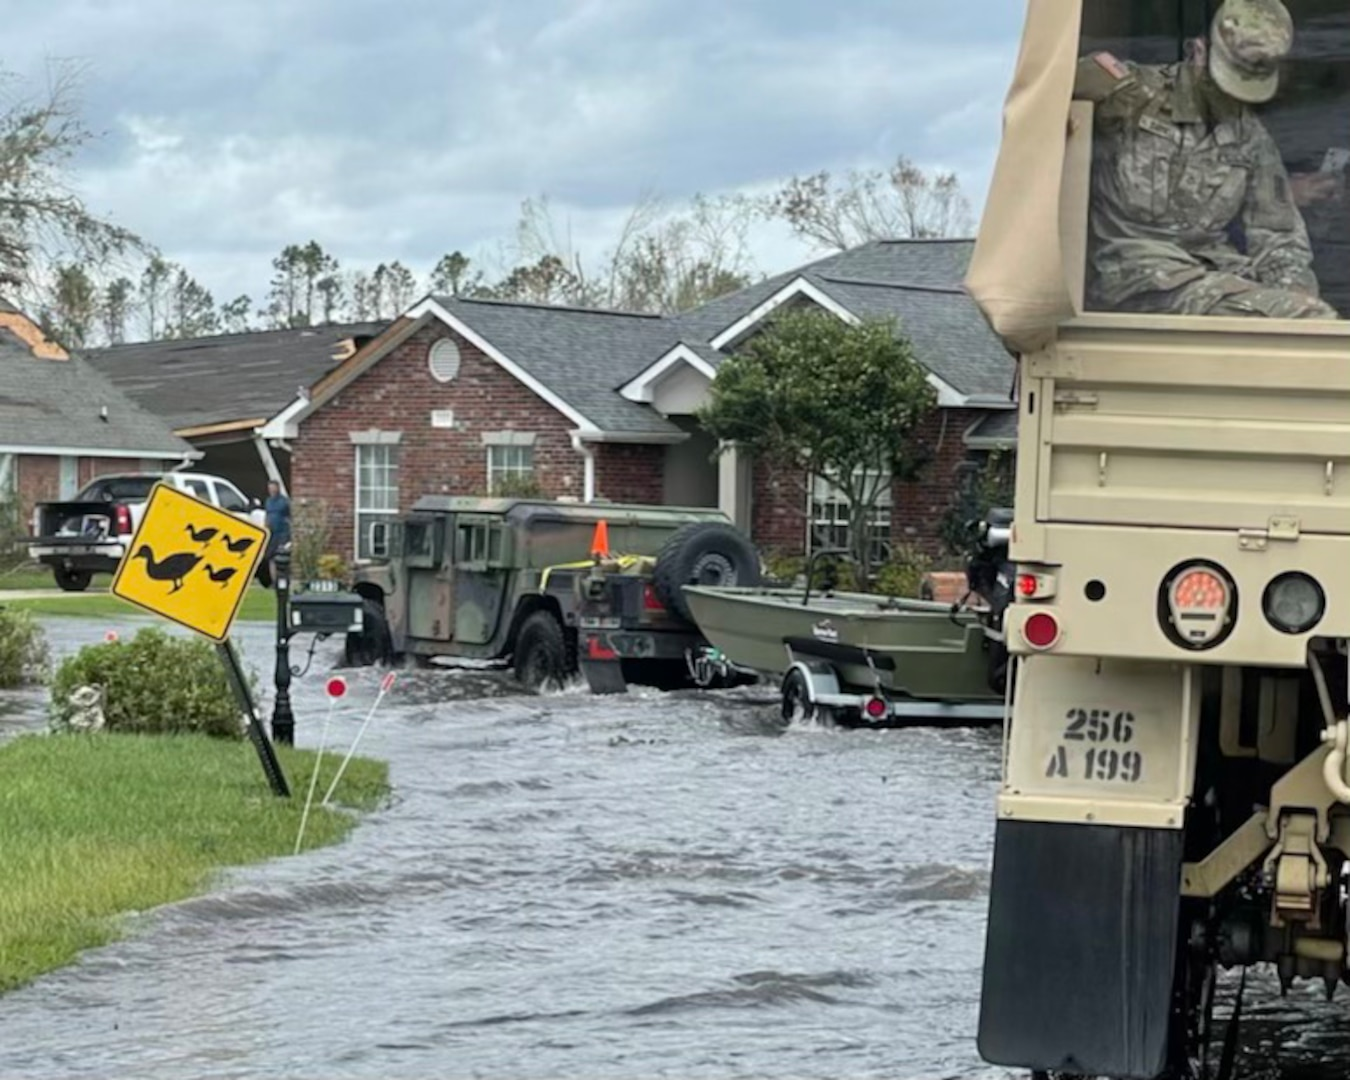 Almost 5,000 members of the Louisiana National Guard are in south Louisiana assisting with relief and recovery efforts in the aftermath of Hurricane Ida.